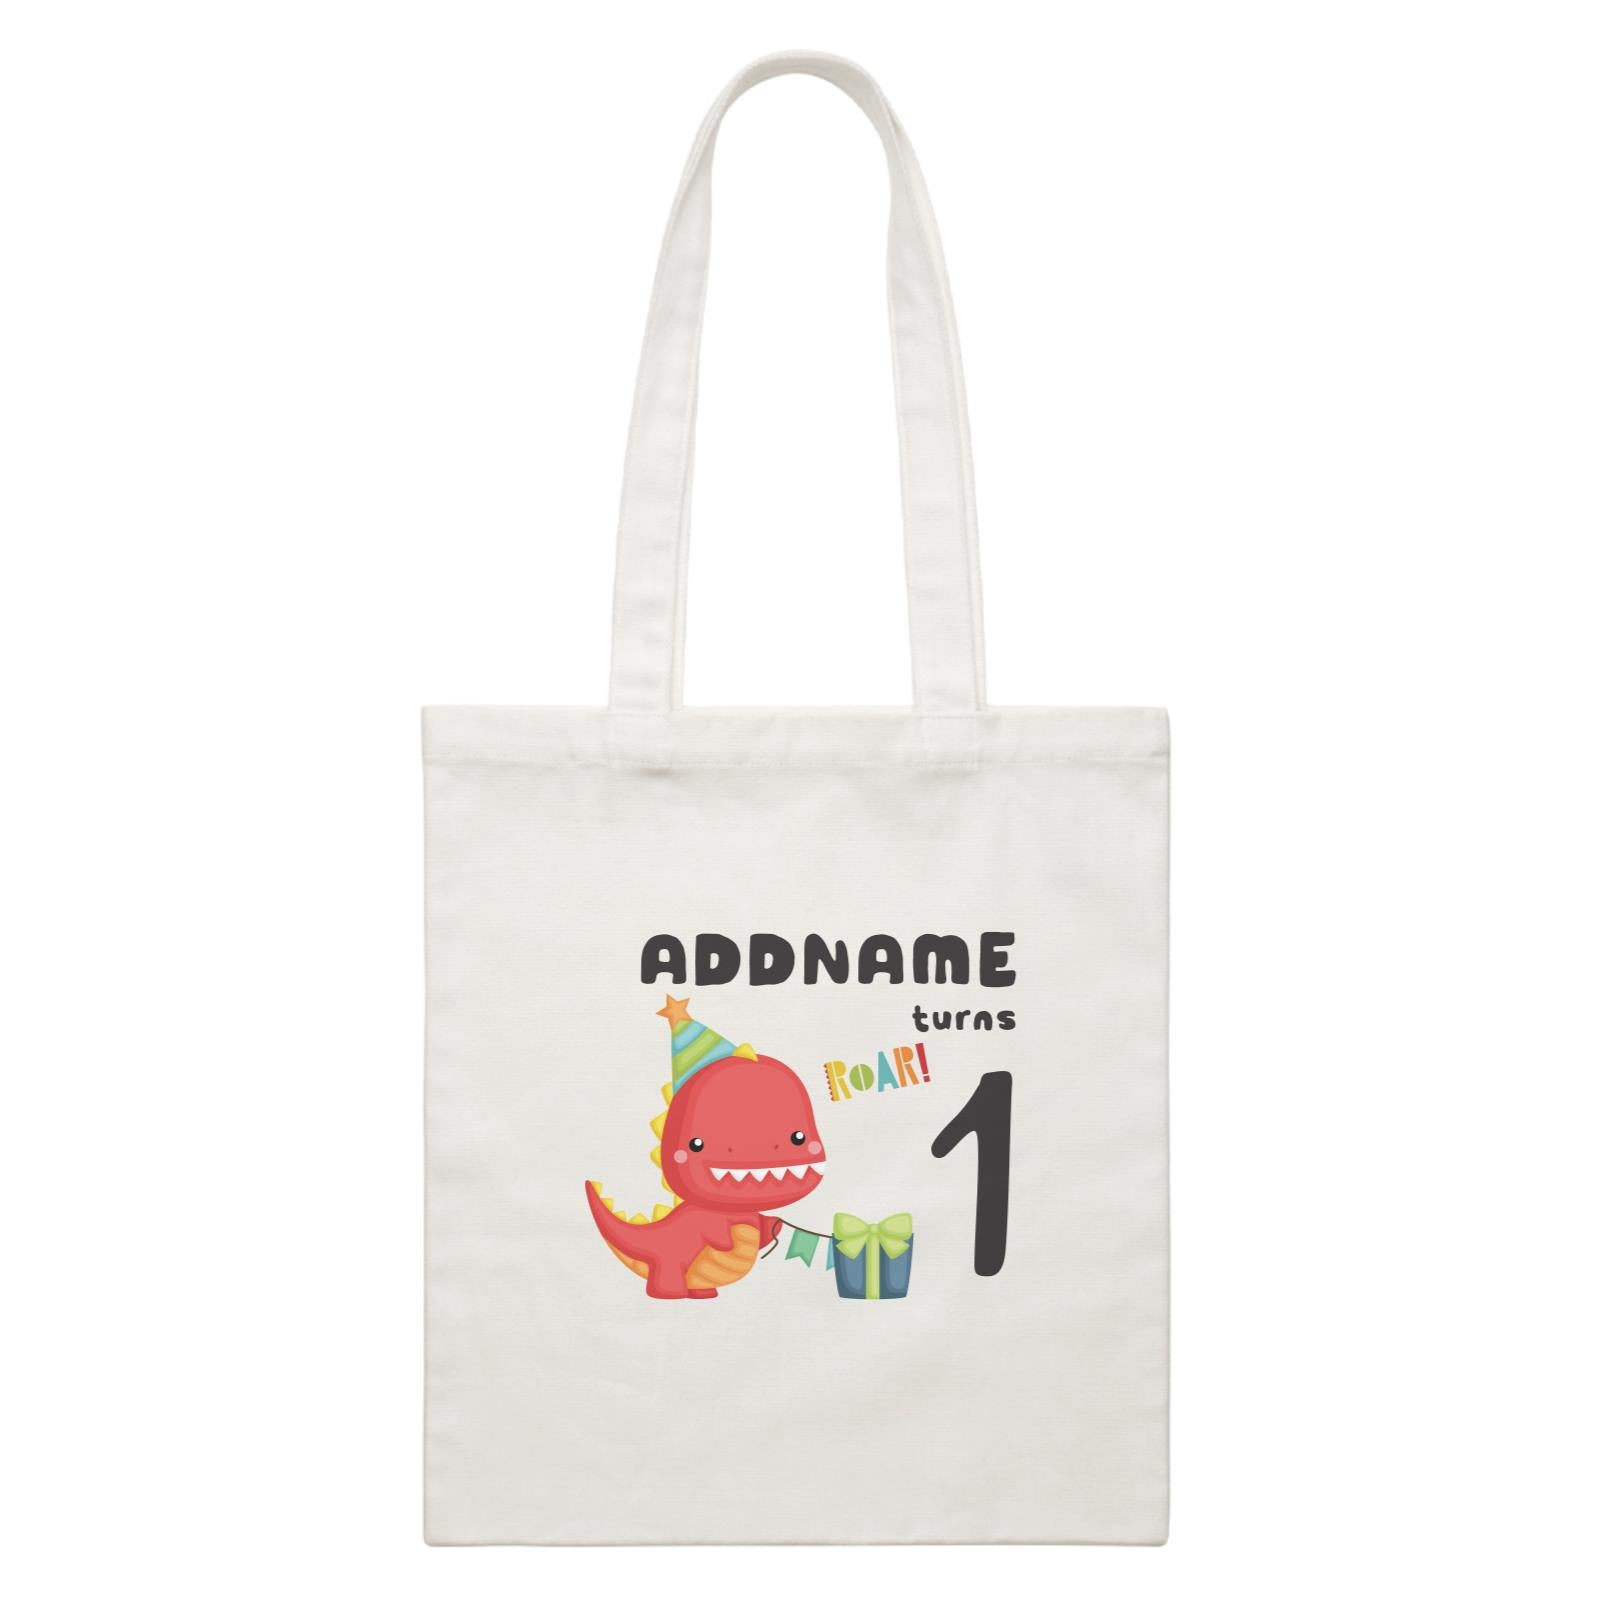 Birthday Dinosaur Happy Red Rex Wearing Party Hat Addname Turns 1 White Canvas Bag